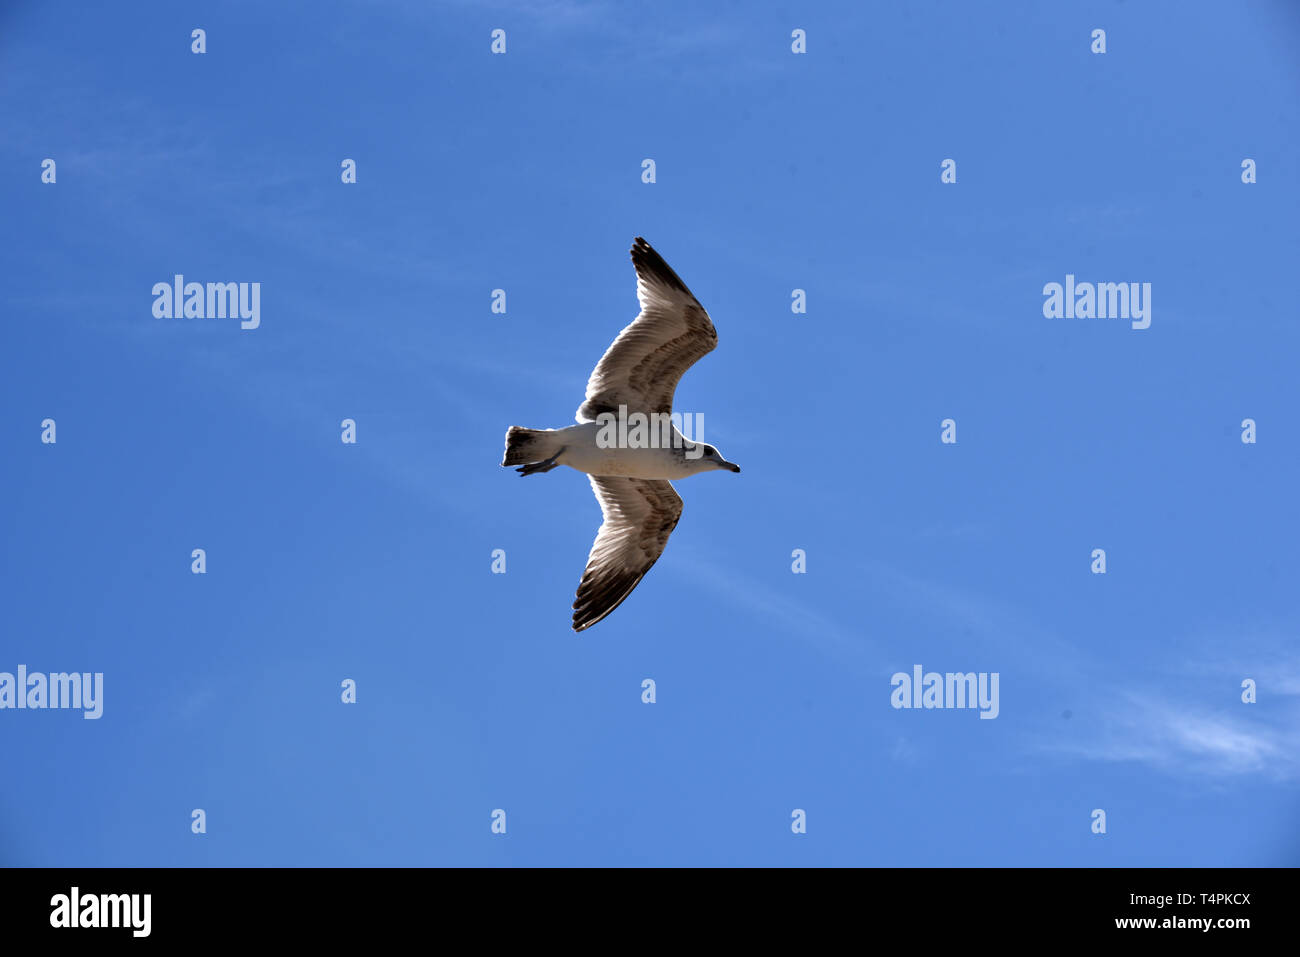 Unique photo of a seagull holding a stationary postion in a strong headwind - Stock Image